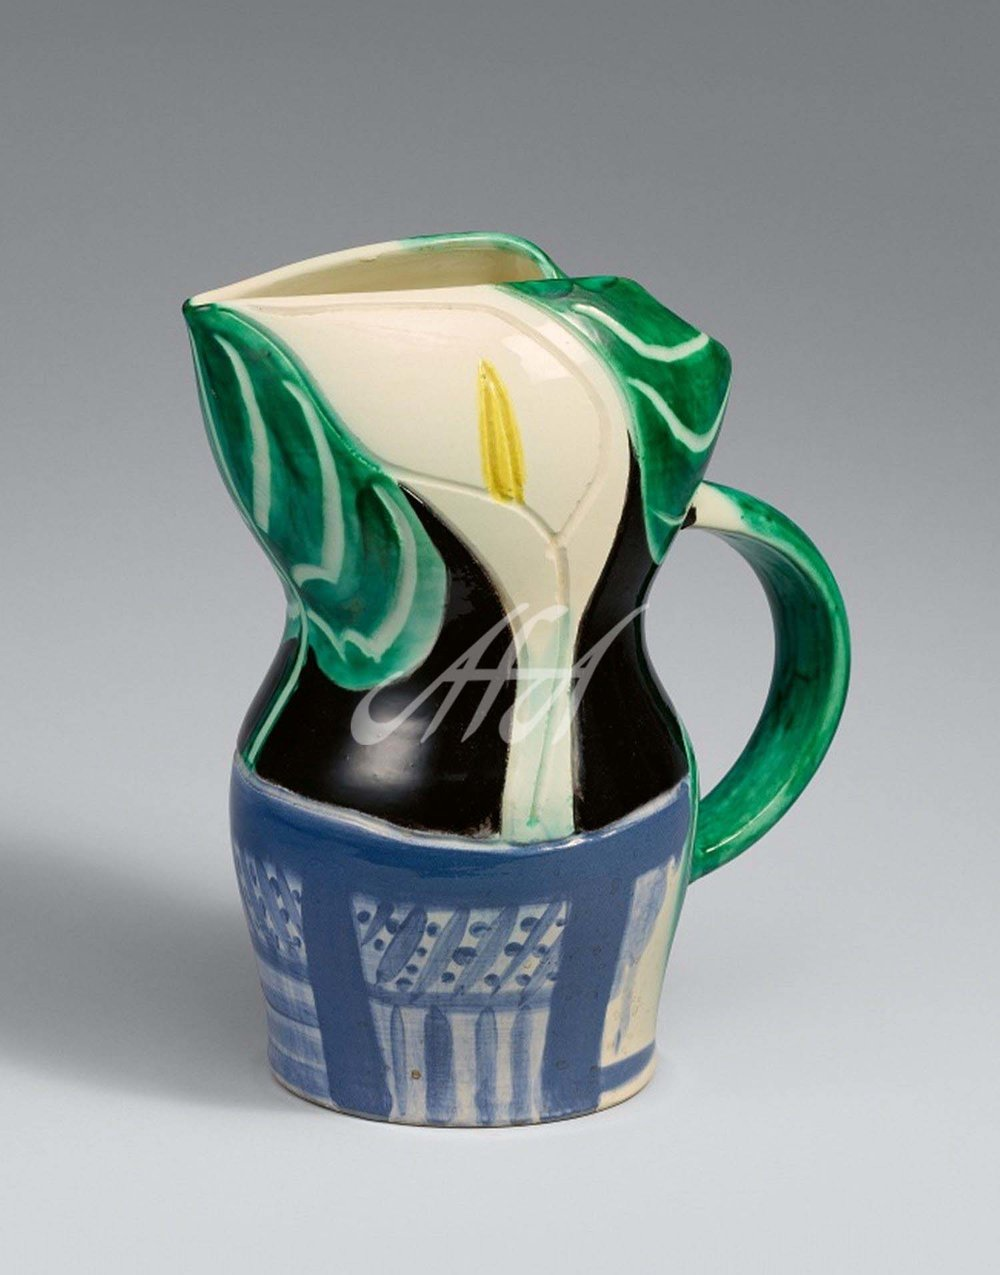 Picasso_ceramic_pitcher with arums watermark.jpg